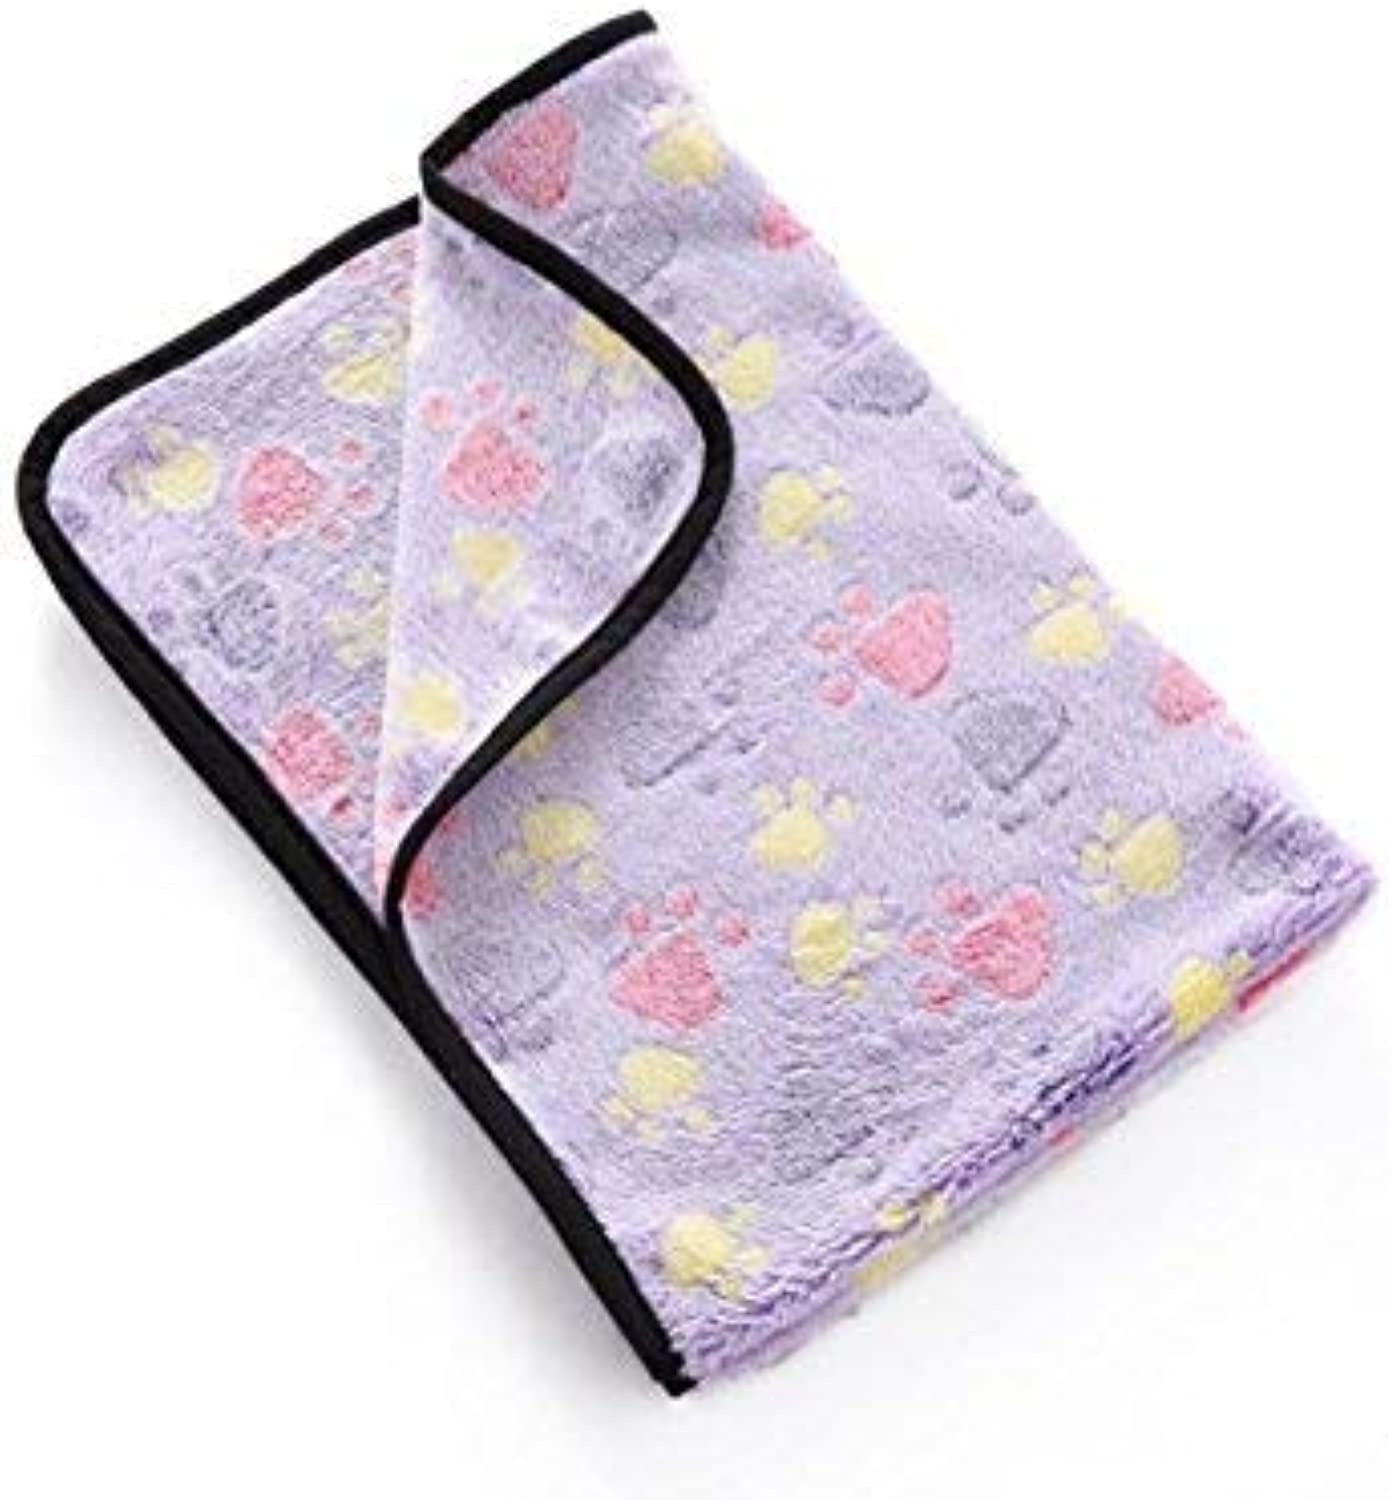 CFHJN HOME Dog Soft Blanket Made of Polyester Hand Wash Travel Sleeping Supplies Pet Bed Blanket